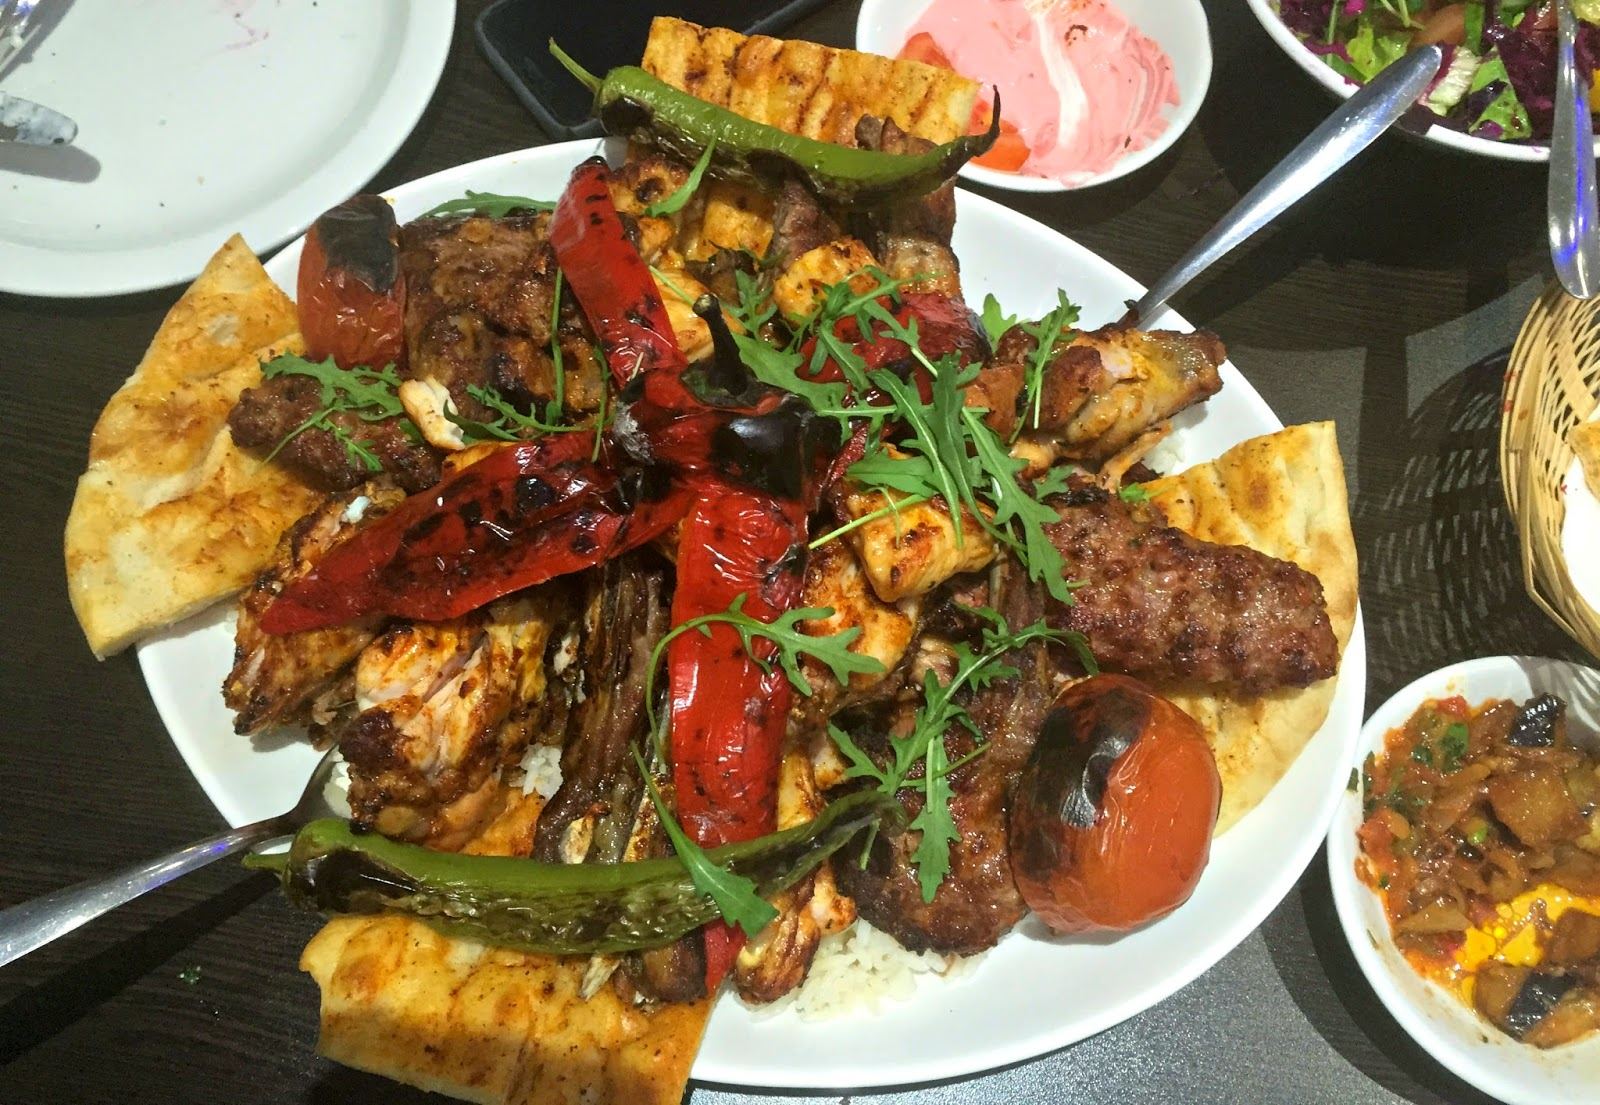 Platter of kebab meat and bread